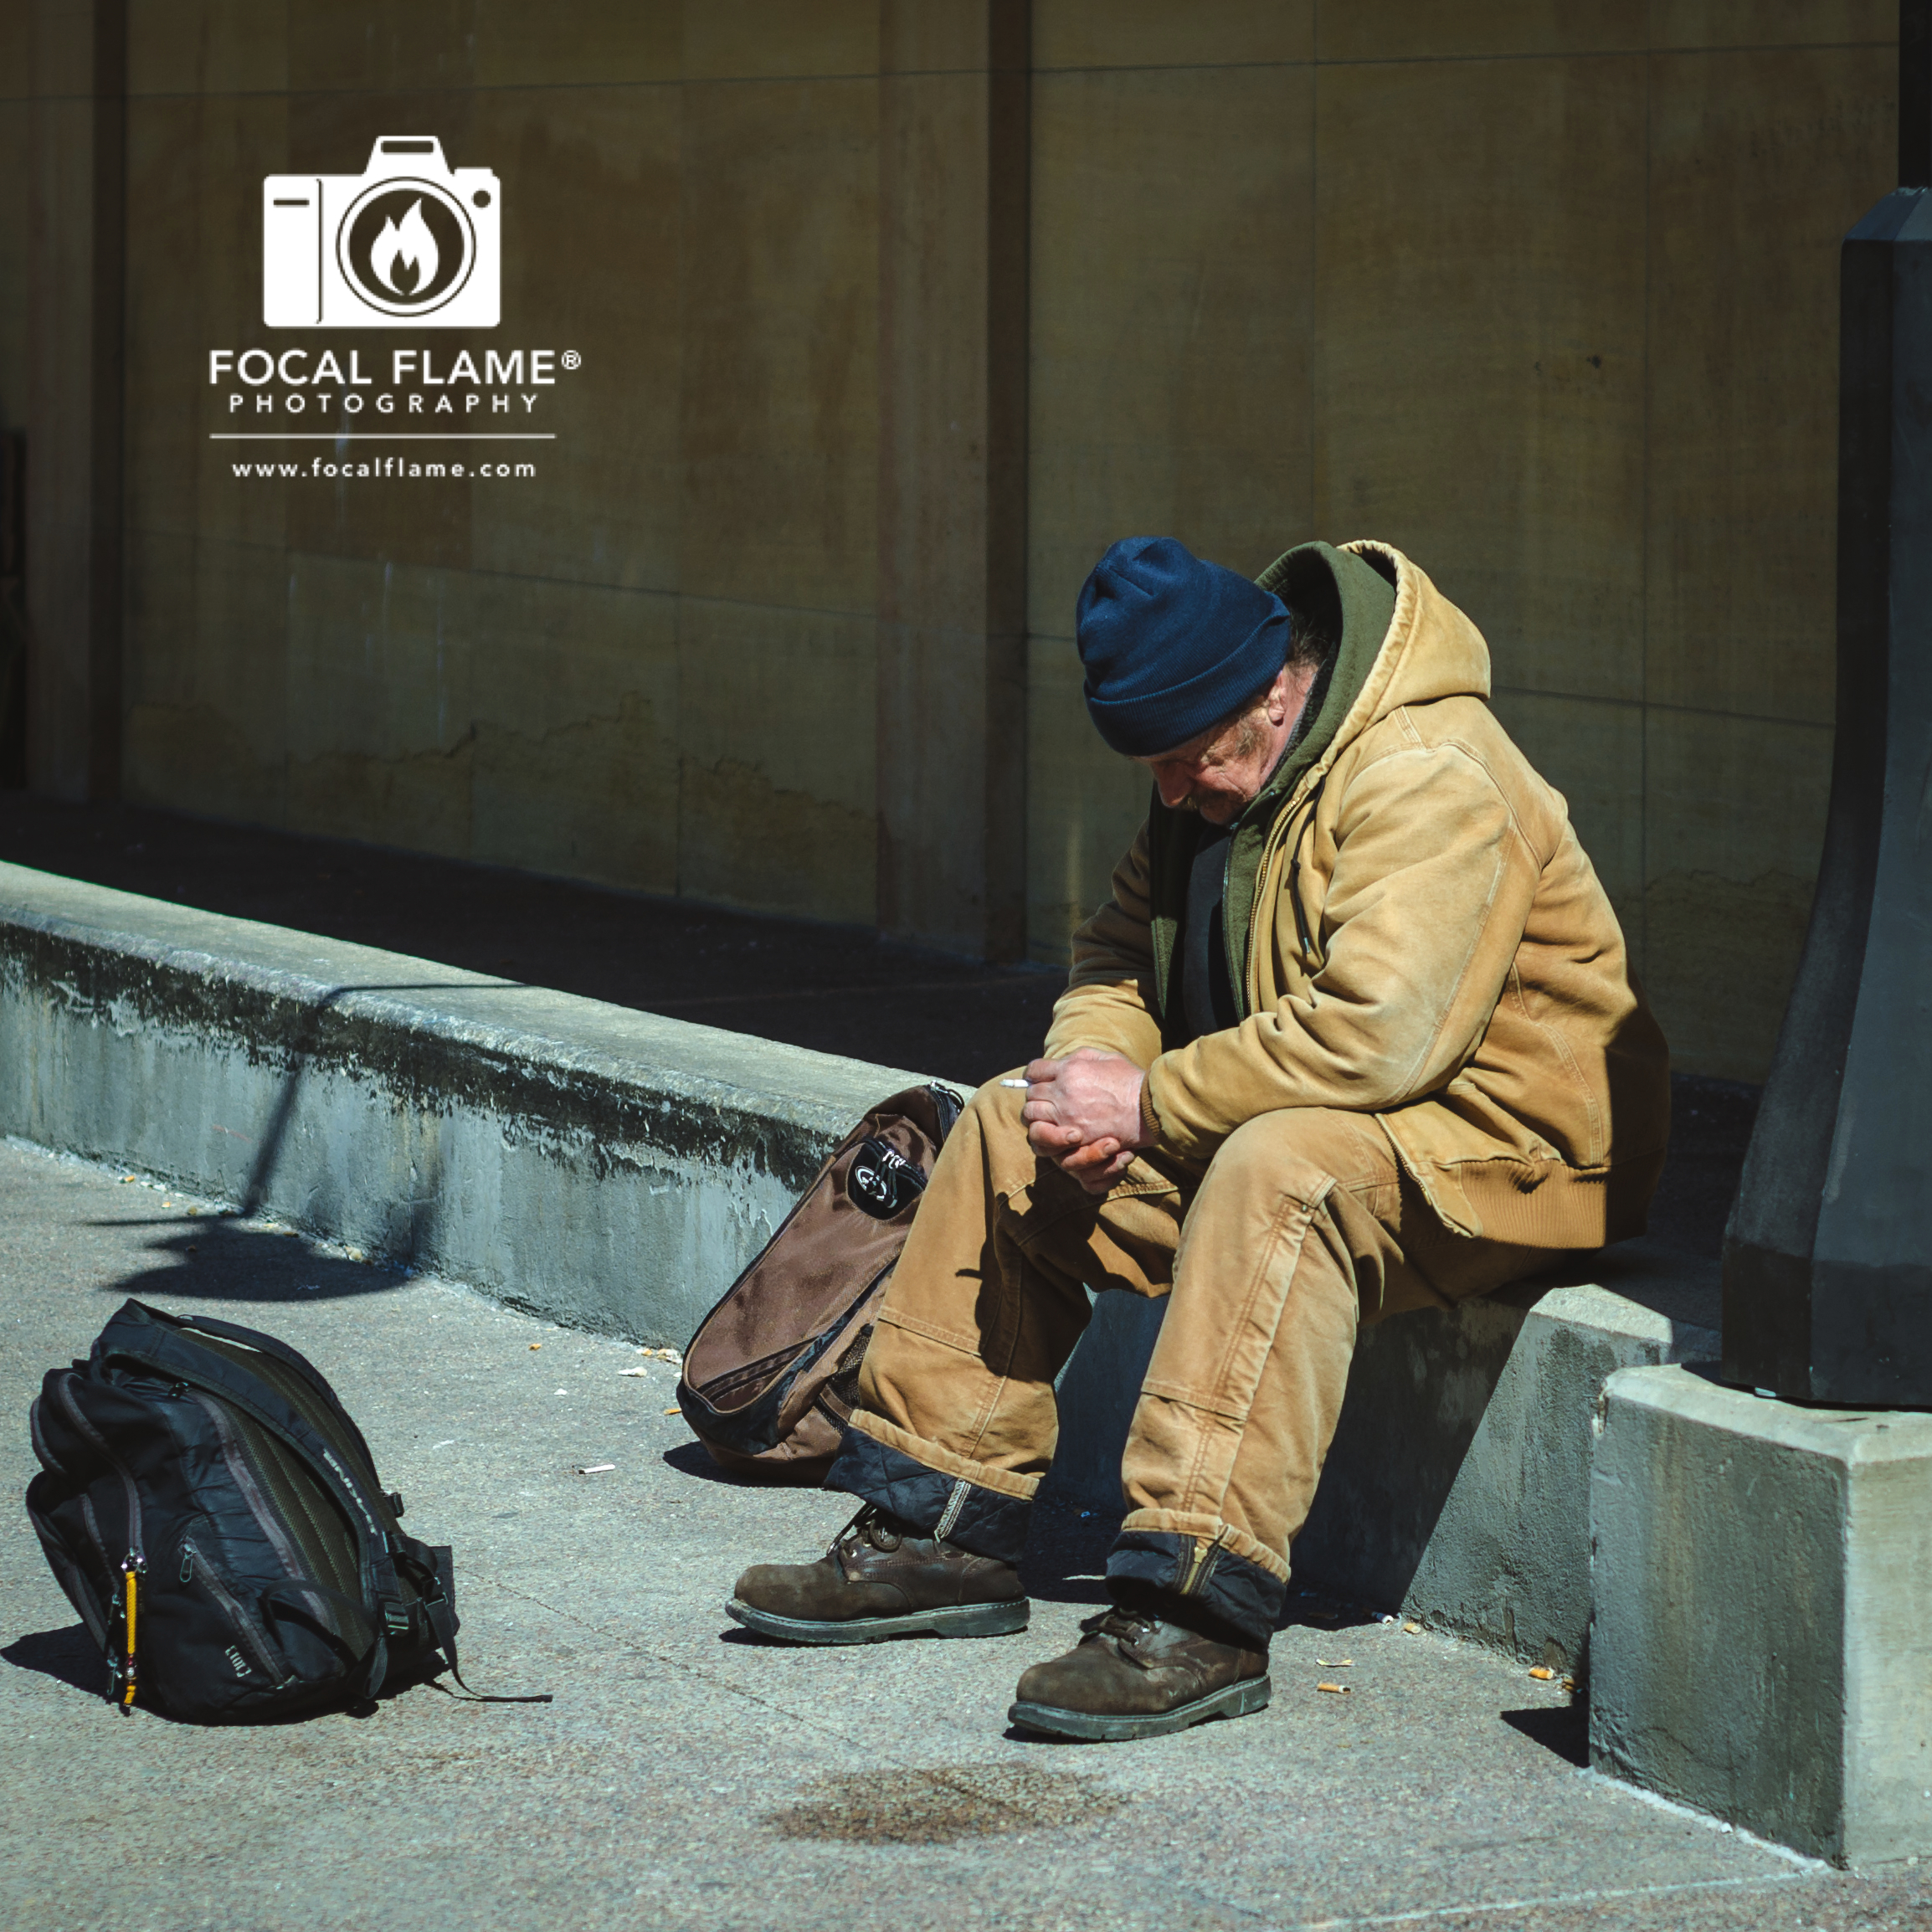 """""""Untitled I"""" by Austin Cope depicts the constant, unsettling, and frenetic motion of homelessness."""